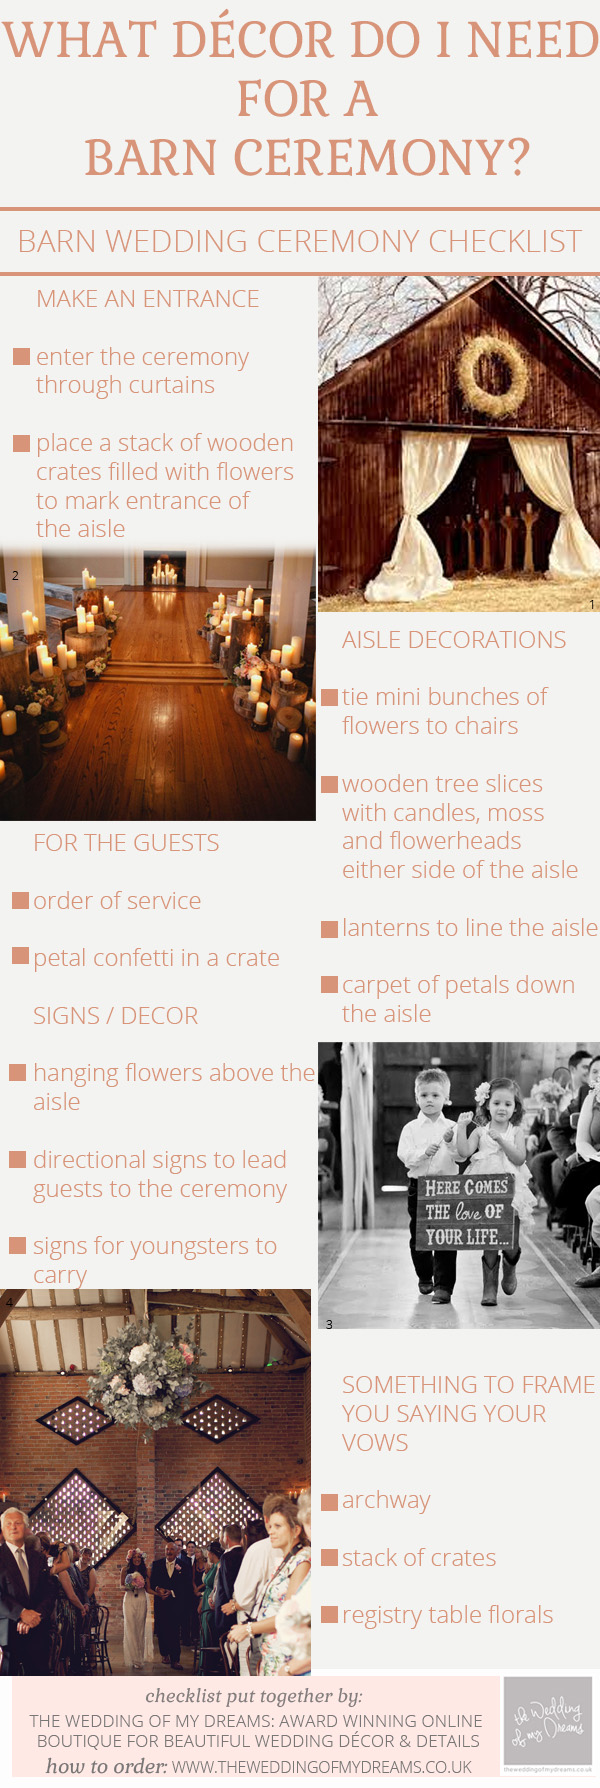 what decorations do i need for a barn wedding ceremont checklist